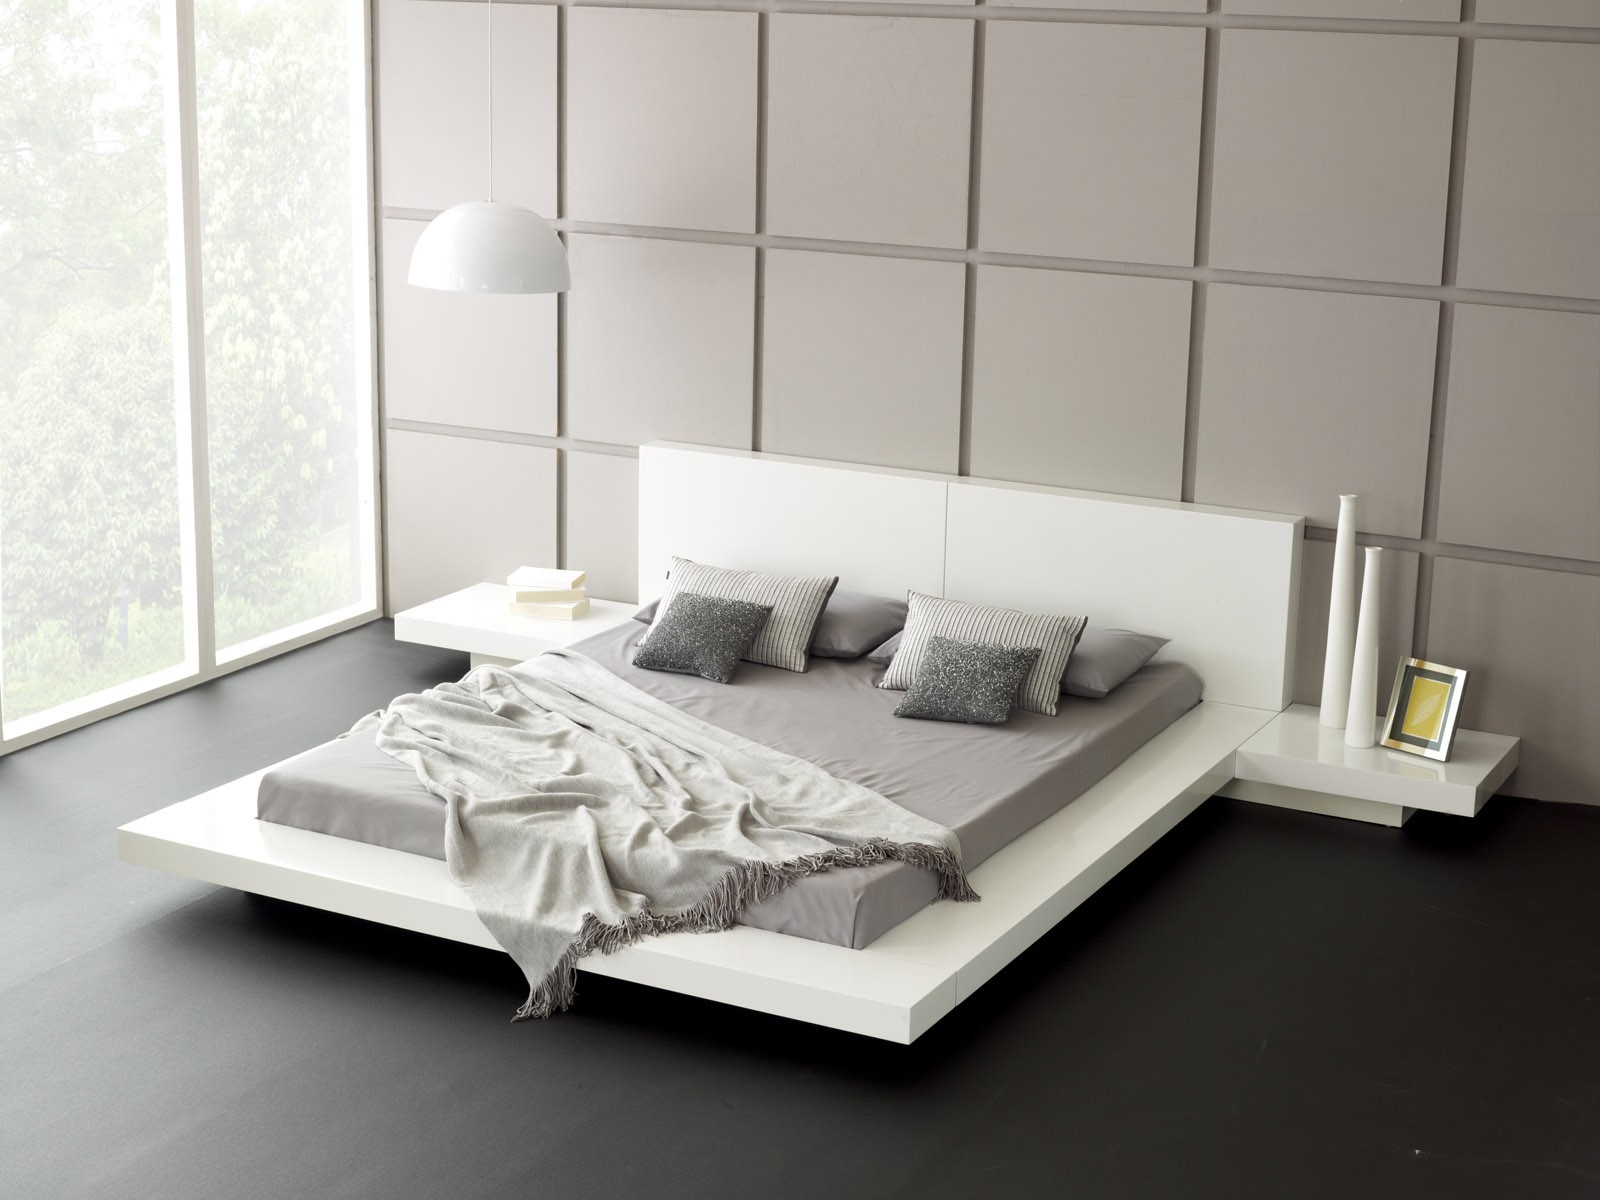 Admirable Wooden Bed Frames Low Profile Queen Bed Square Panel Wall Low Profile Bed Frame Queen Homesfeed Low Profile Bed Frame Low Profile Bed Sheets houzz-03 Low Profile Bed